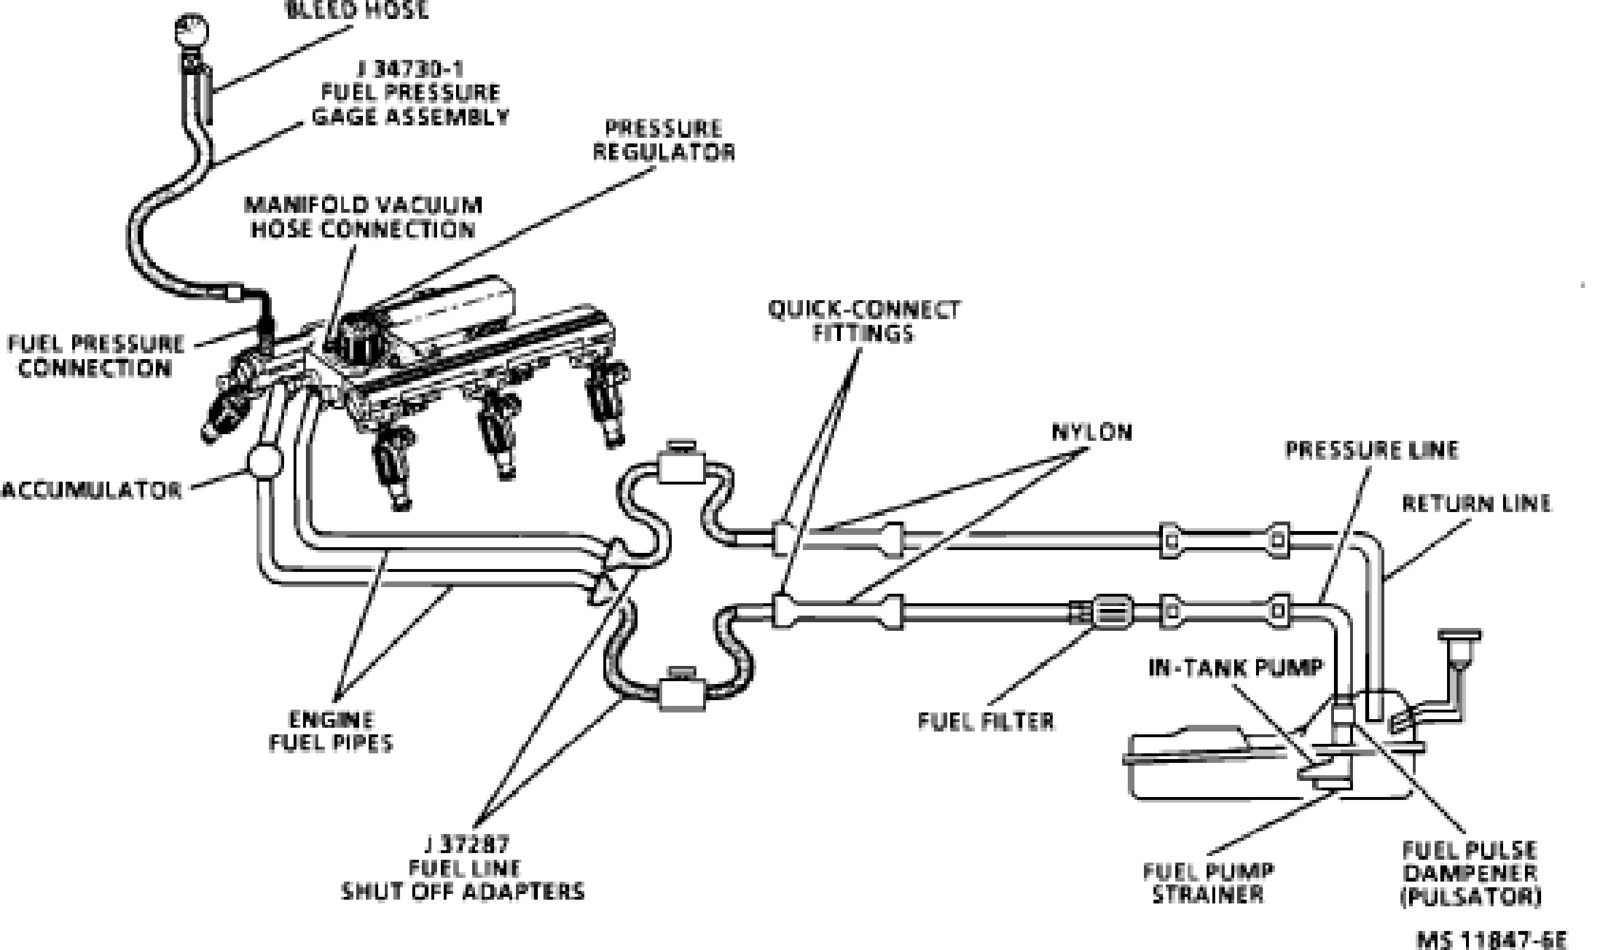 Chevy Silverado Fuel Line Diagram